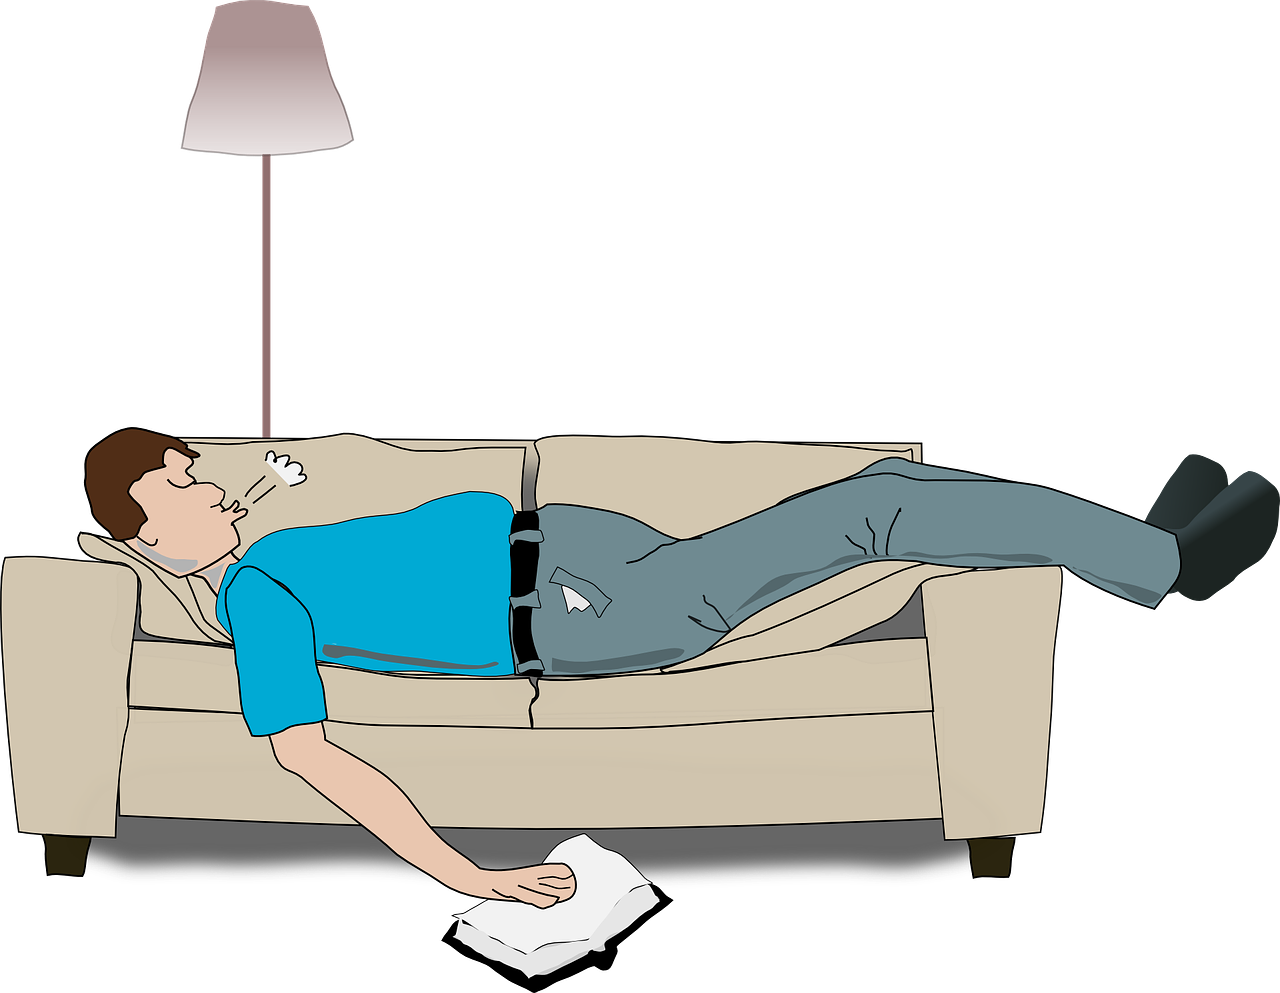 Couch clipart lie on couch. December scientists talk funny